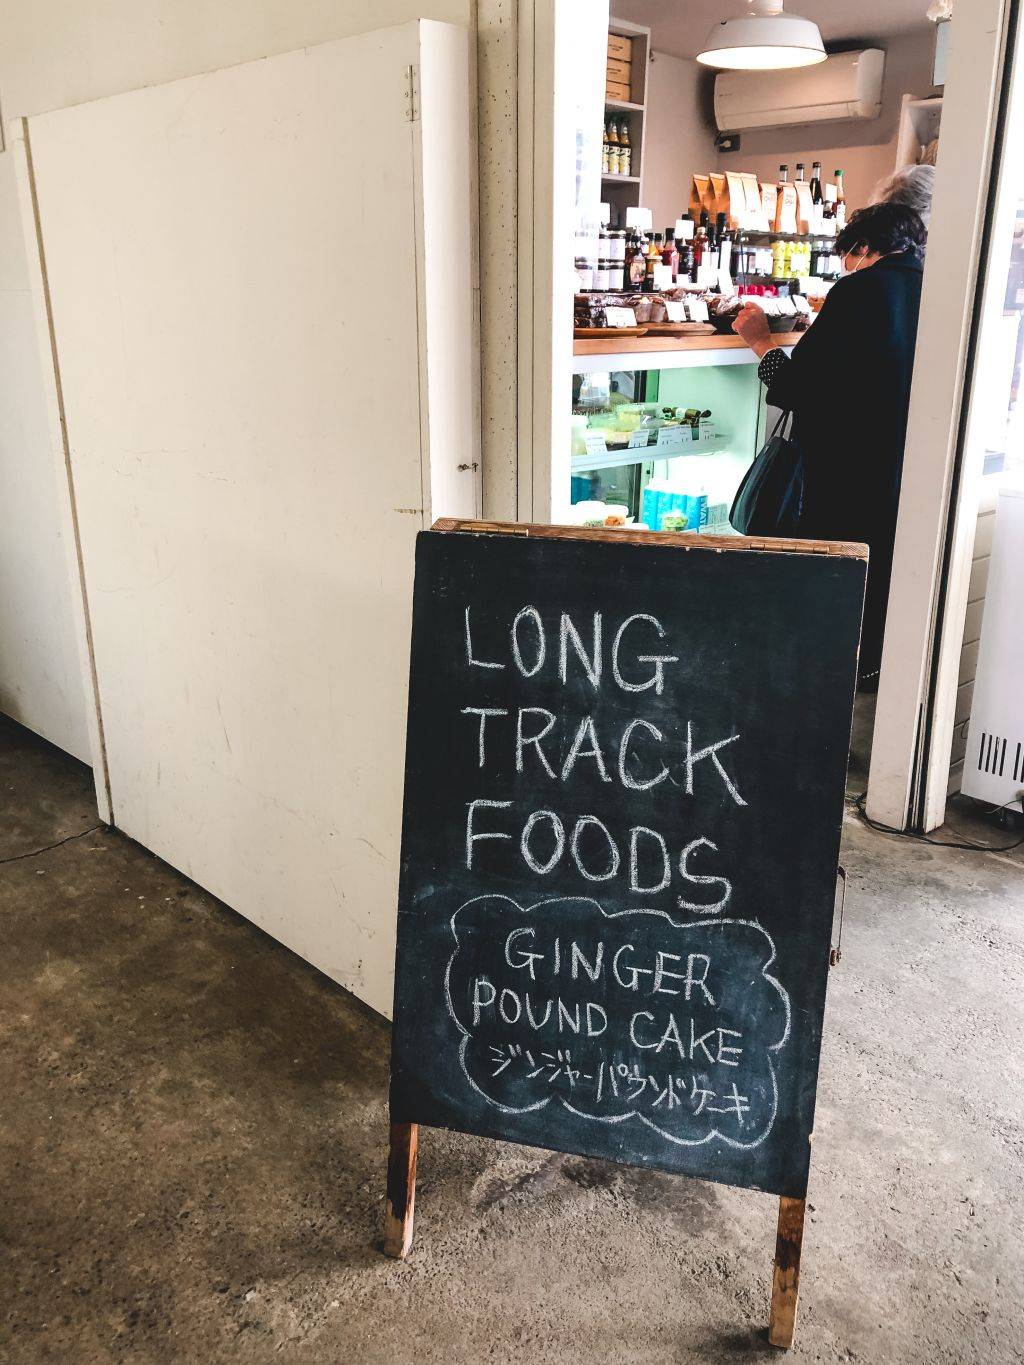 Daily by LONG TRACK FOODS(デイリーバイロングトラックフード)